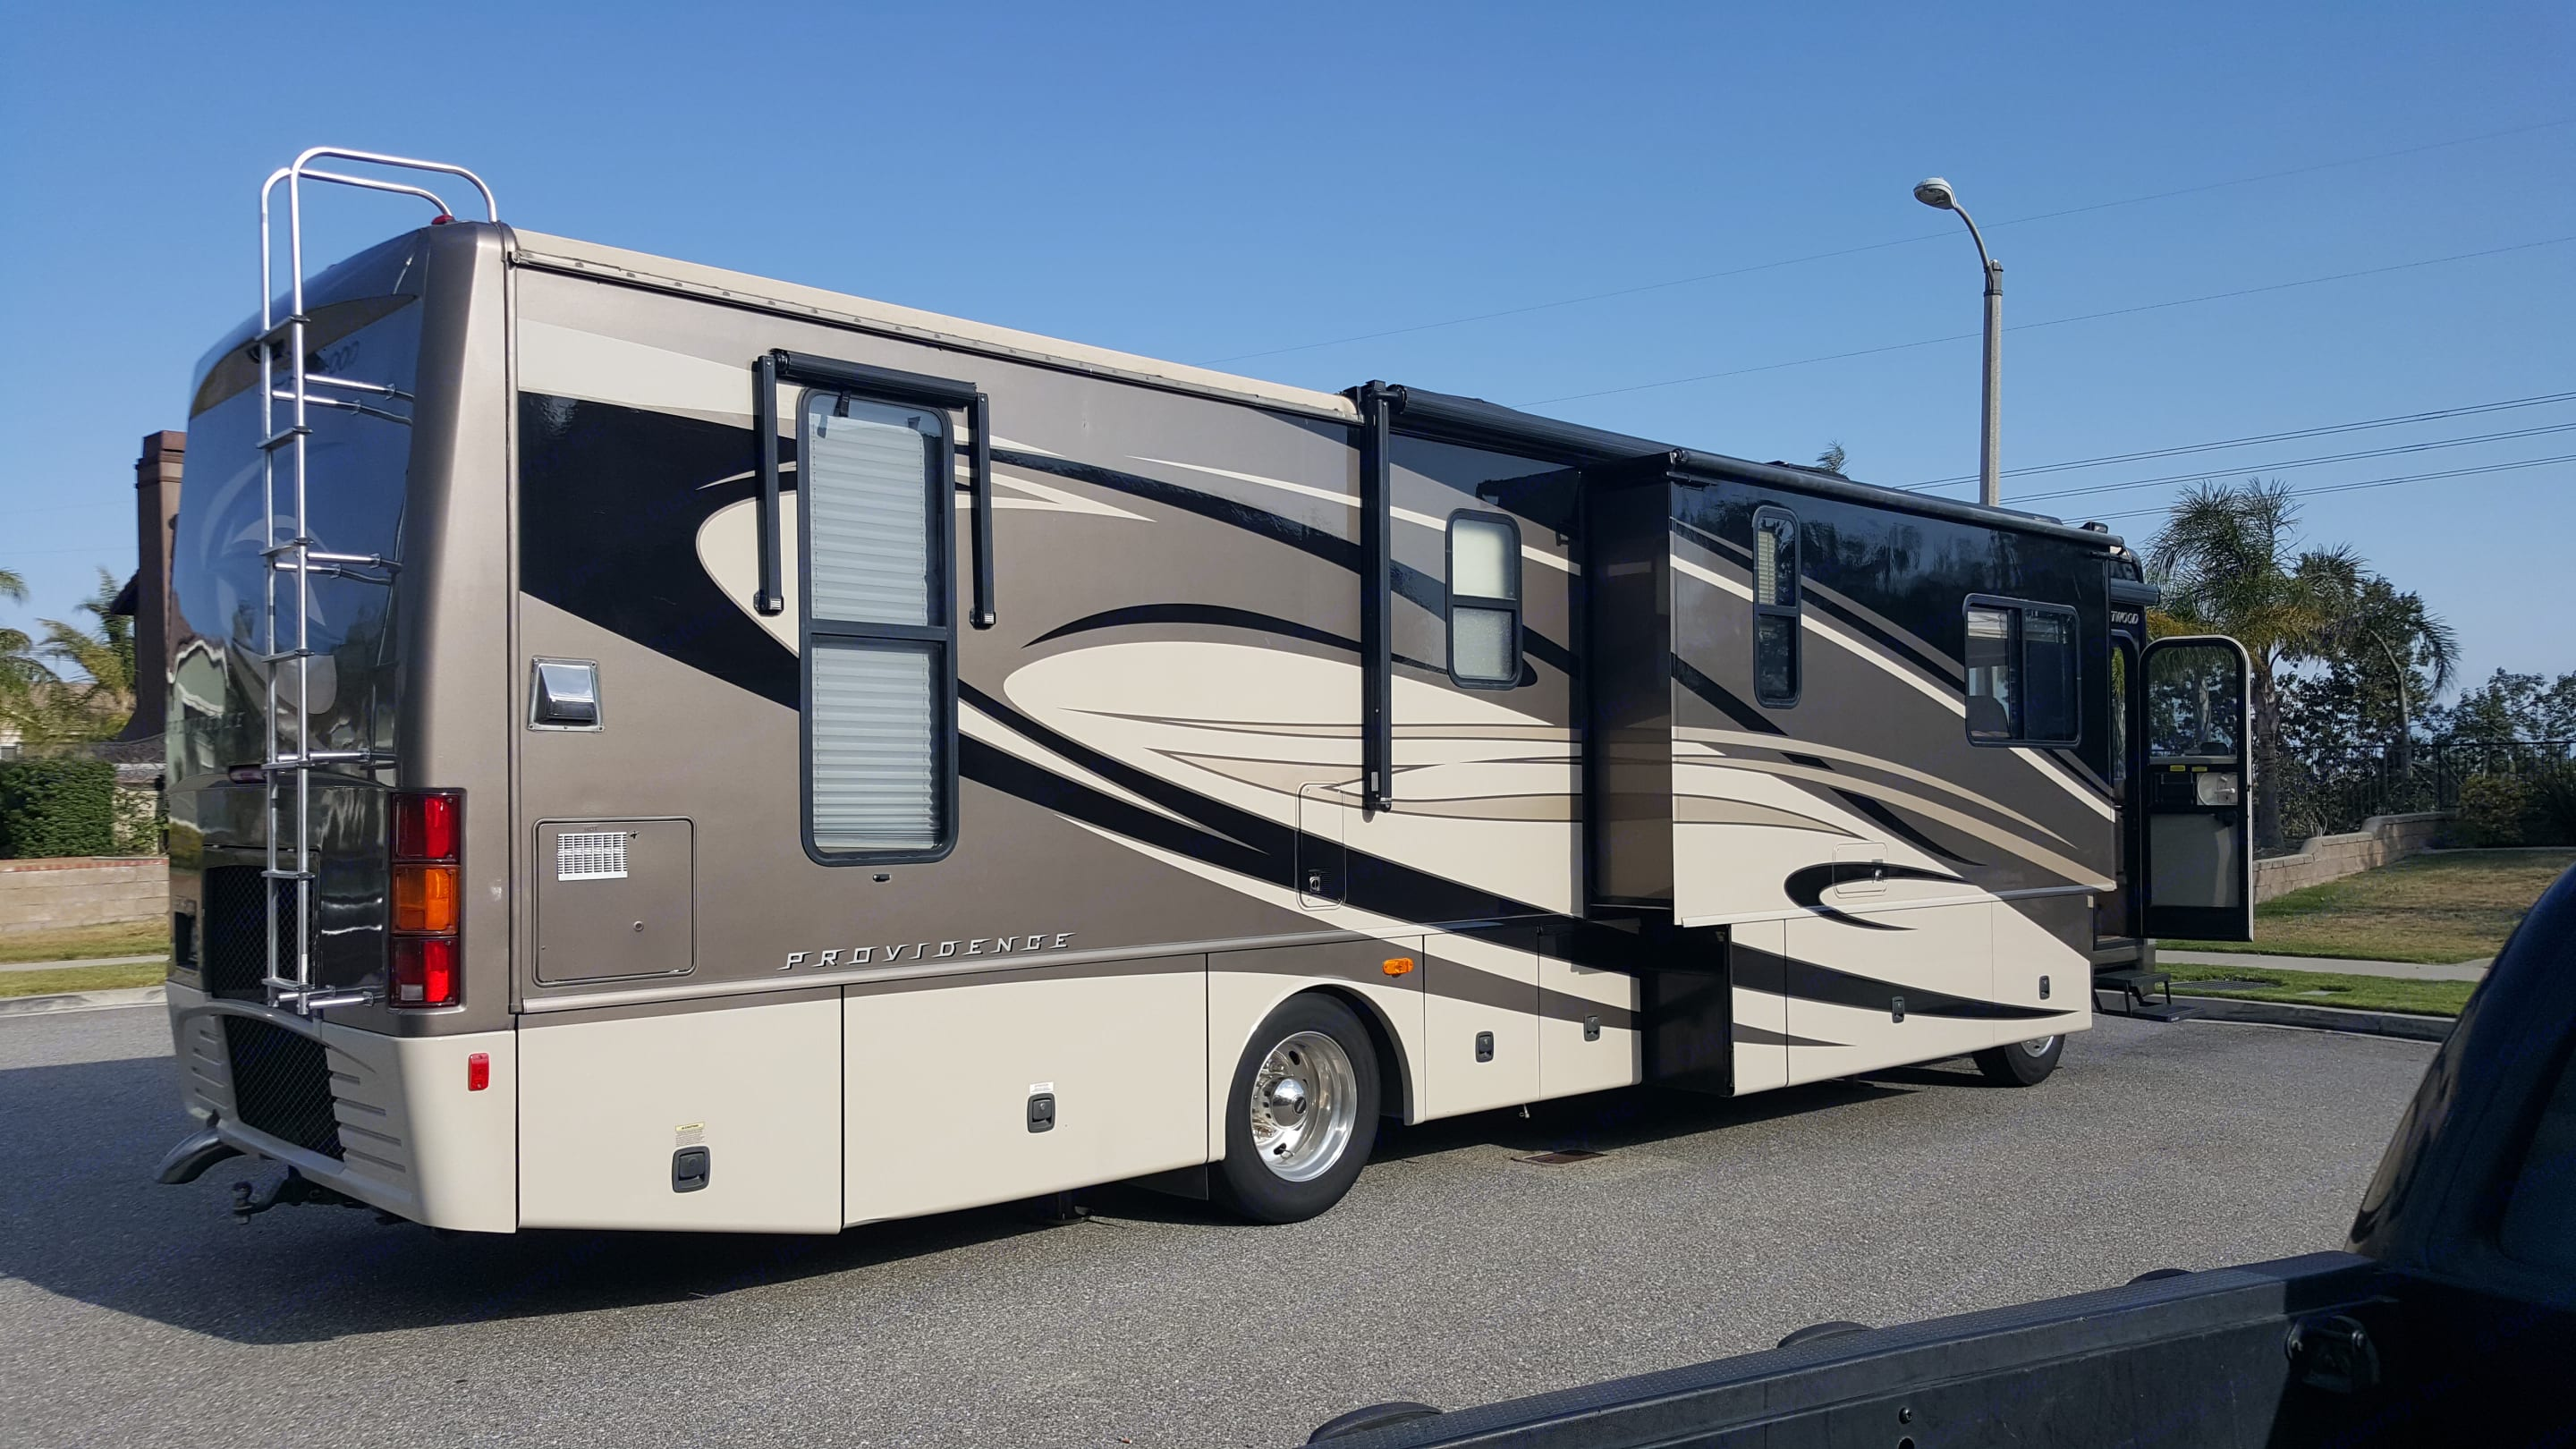 Awnings for patio and all windows!  Plenty of storage for 2 week travels!. Fleetwood Providence 2007